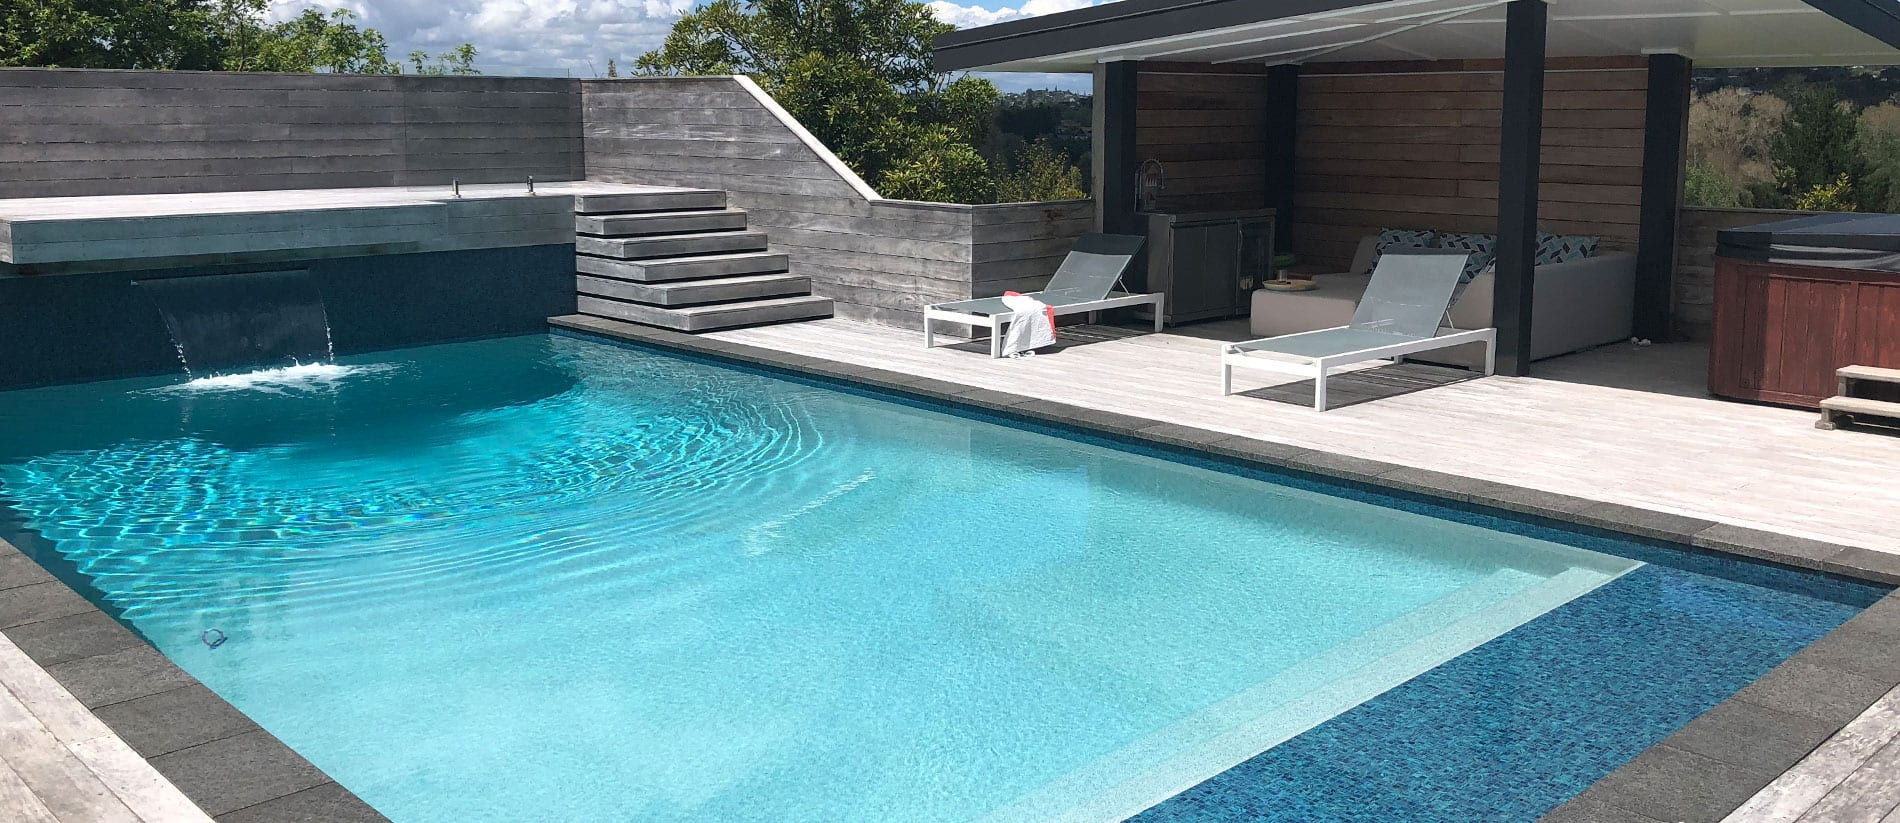 swimming and spa pool servicing auckland pool cleaning auckland